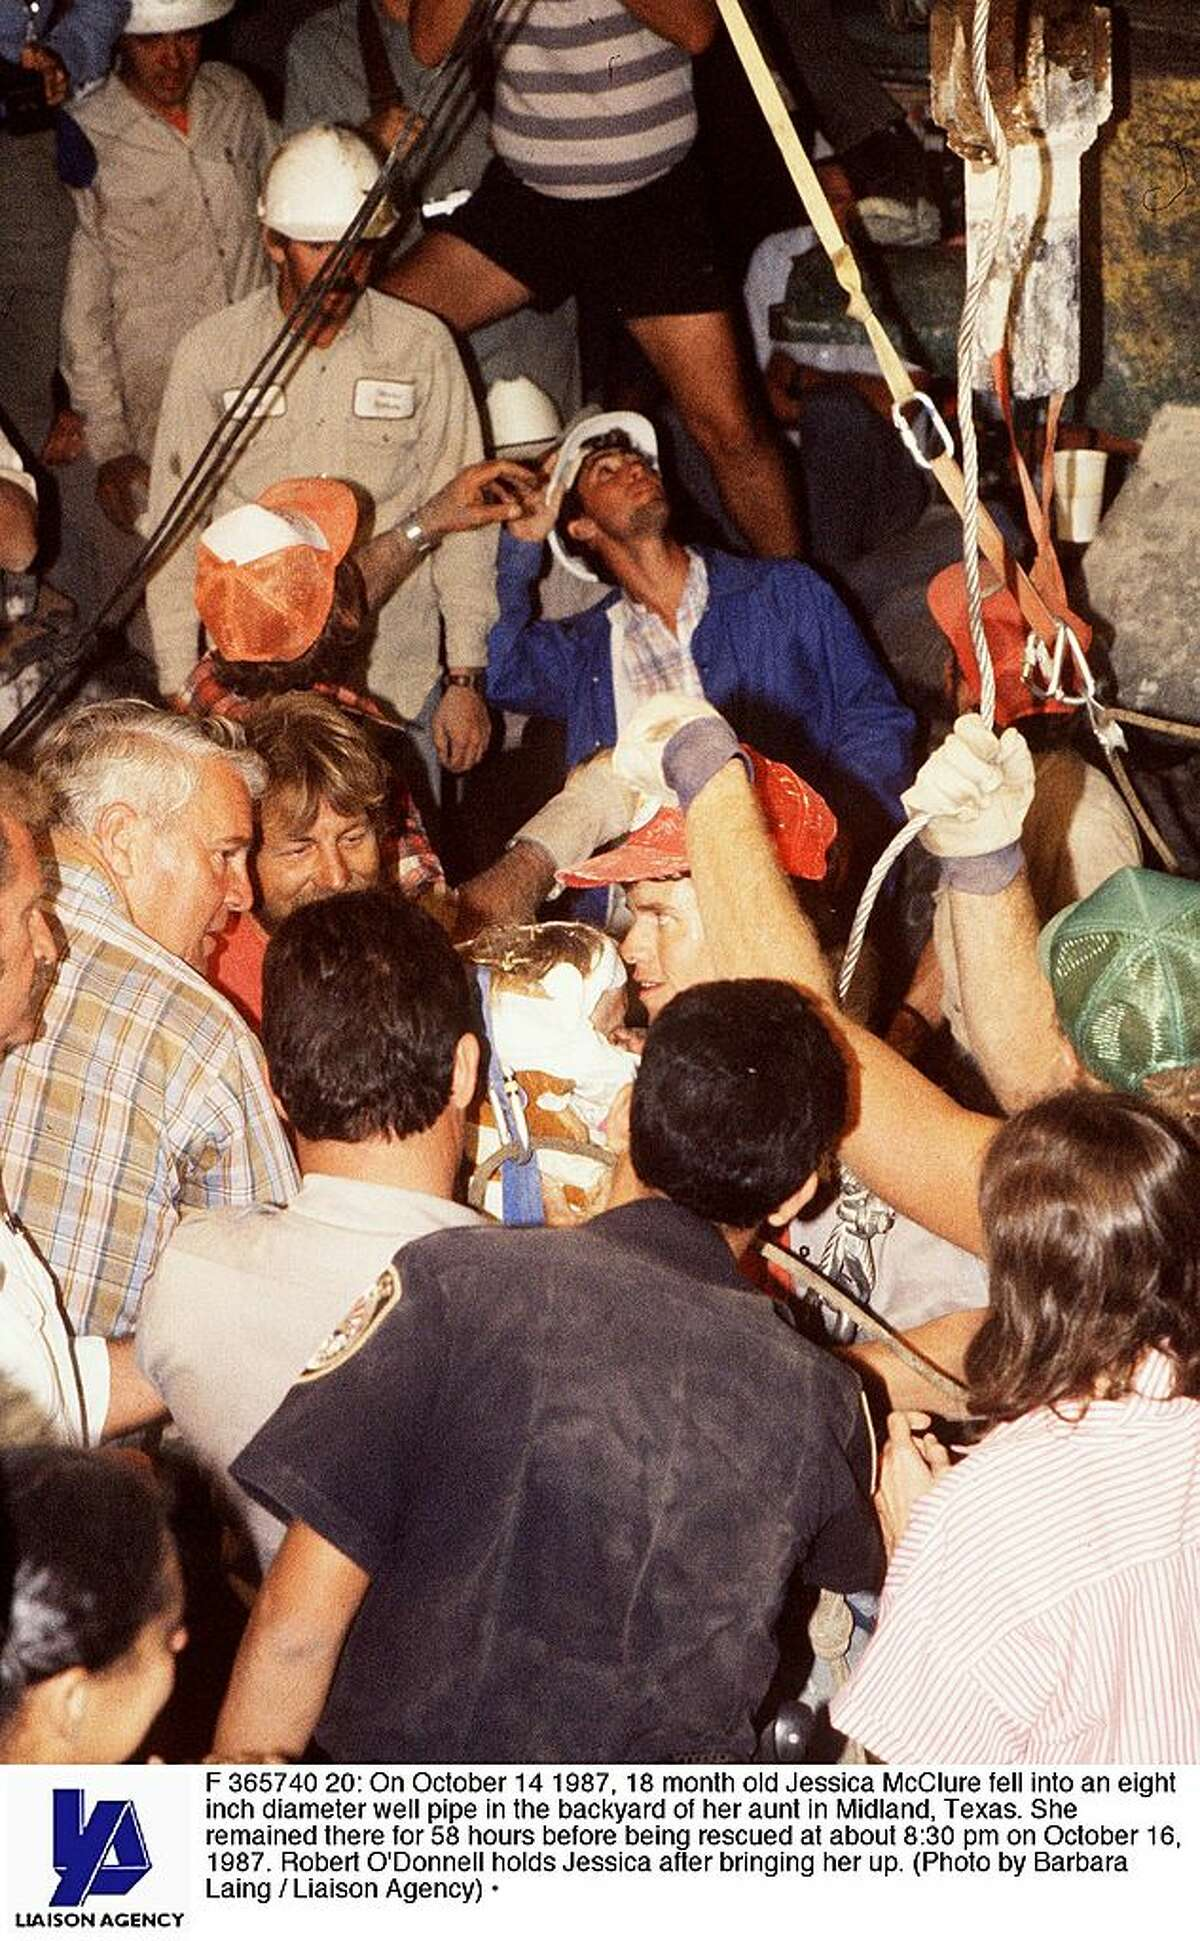 At 18-months-old, she fell into an eight-inch diameter well pipe in the backyard of her aunt's house in Midland, Texas. She remained there for 58 hours before being rescued at about 8:30 pm on October 16, 1987.